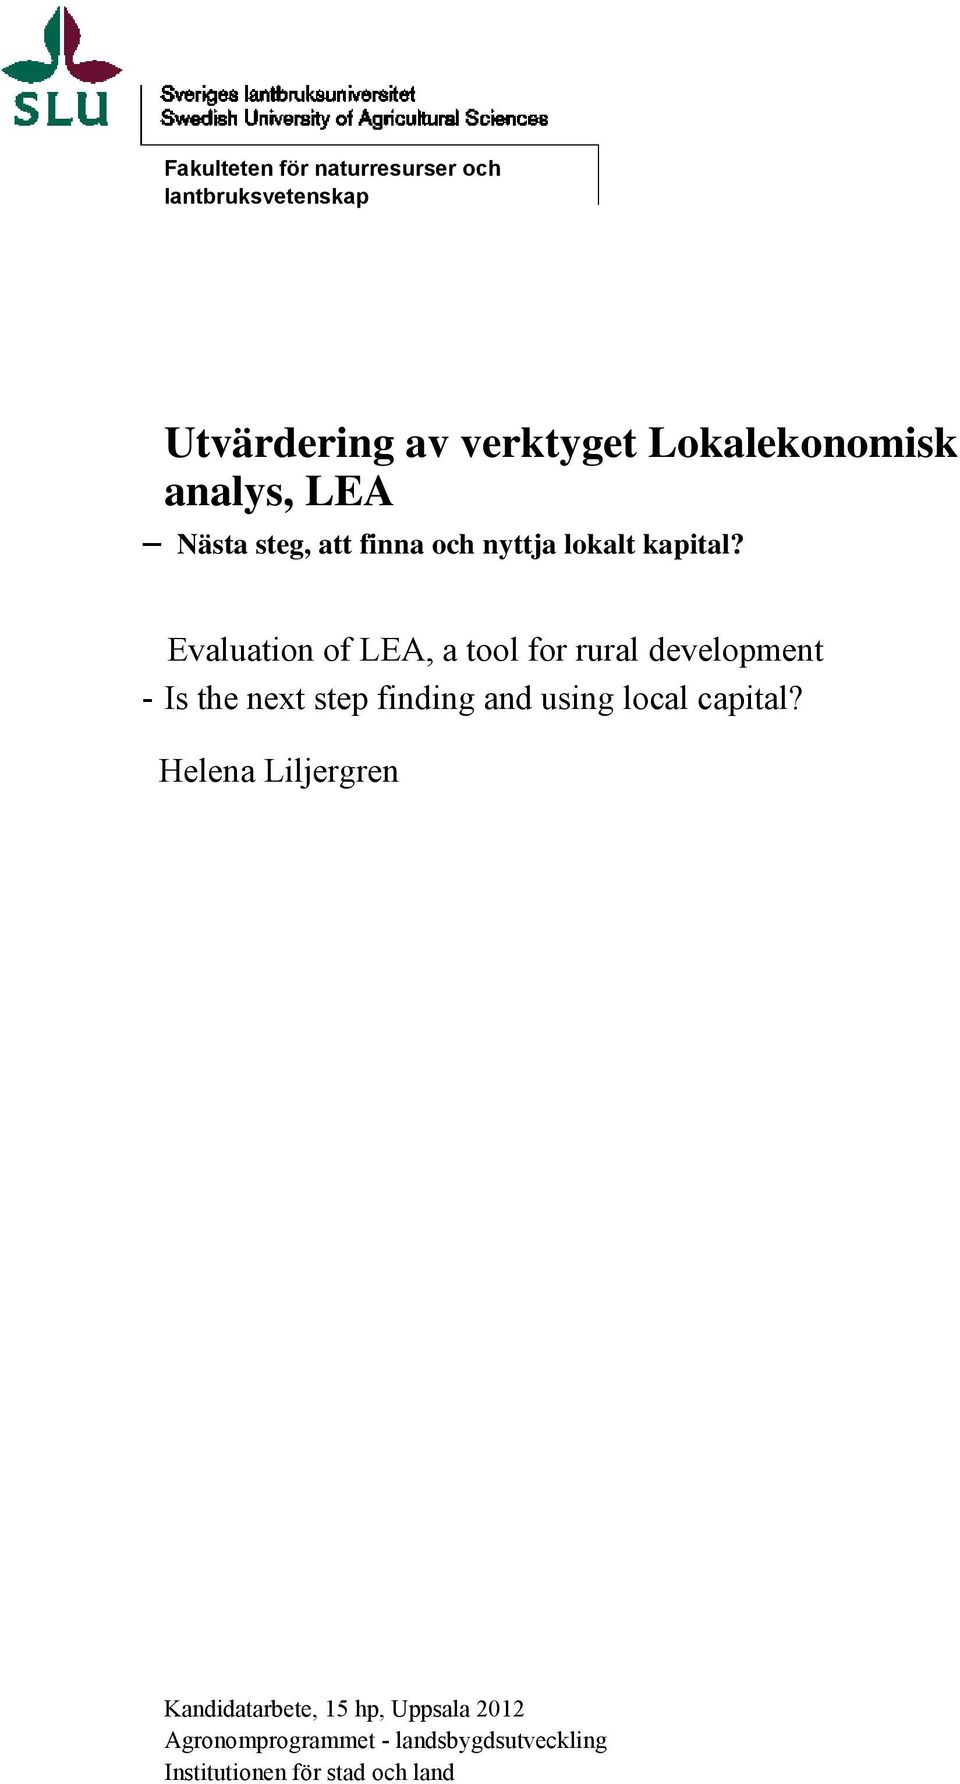 Evaluation of LEA, a tool for rural development - Is the next step finding and using local